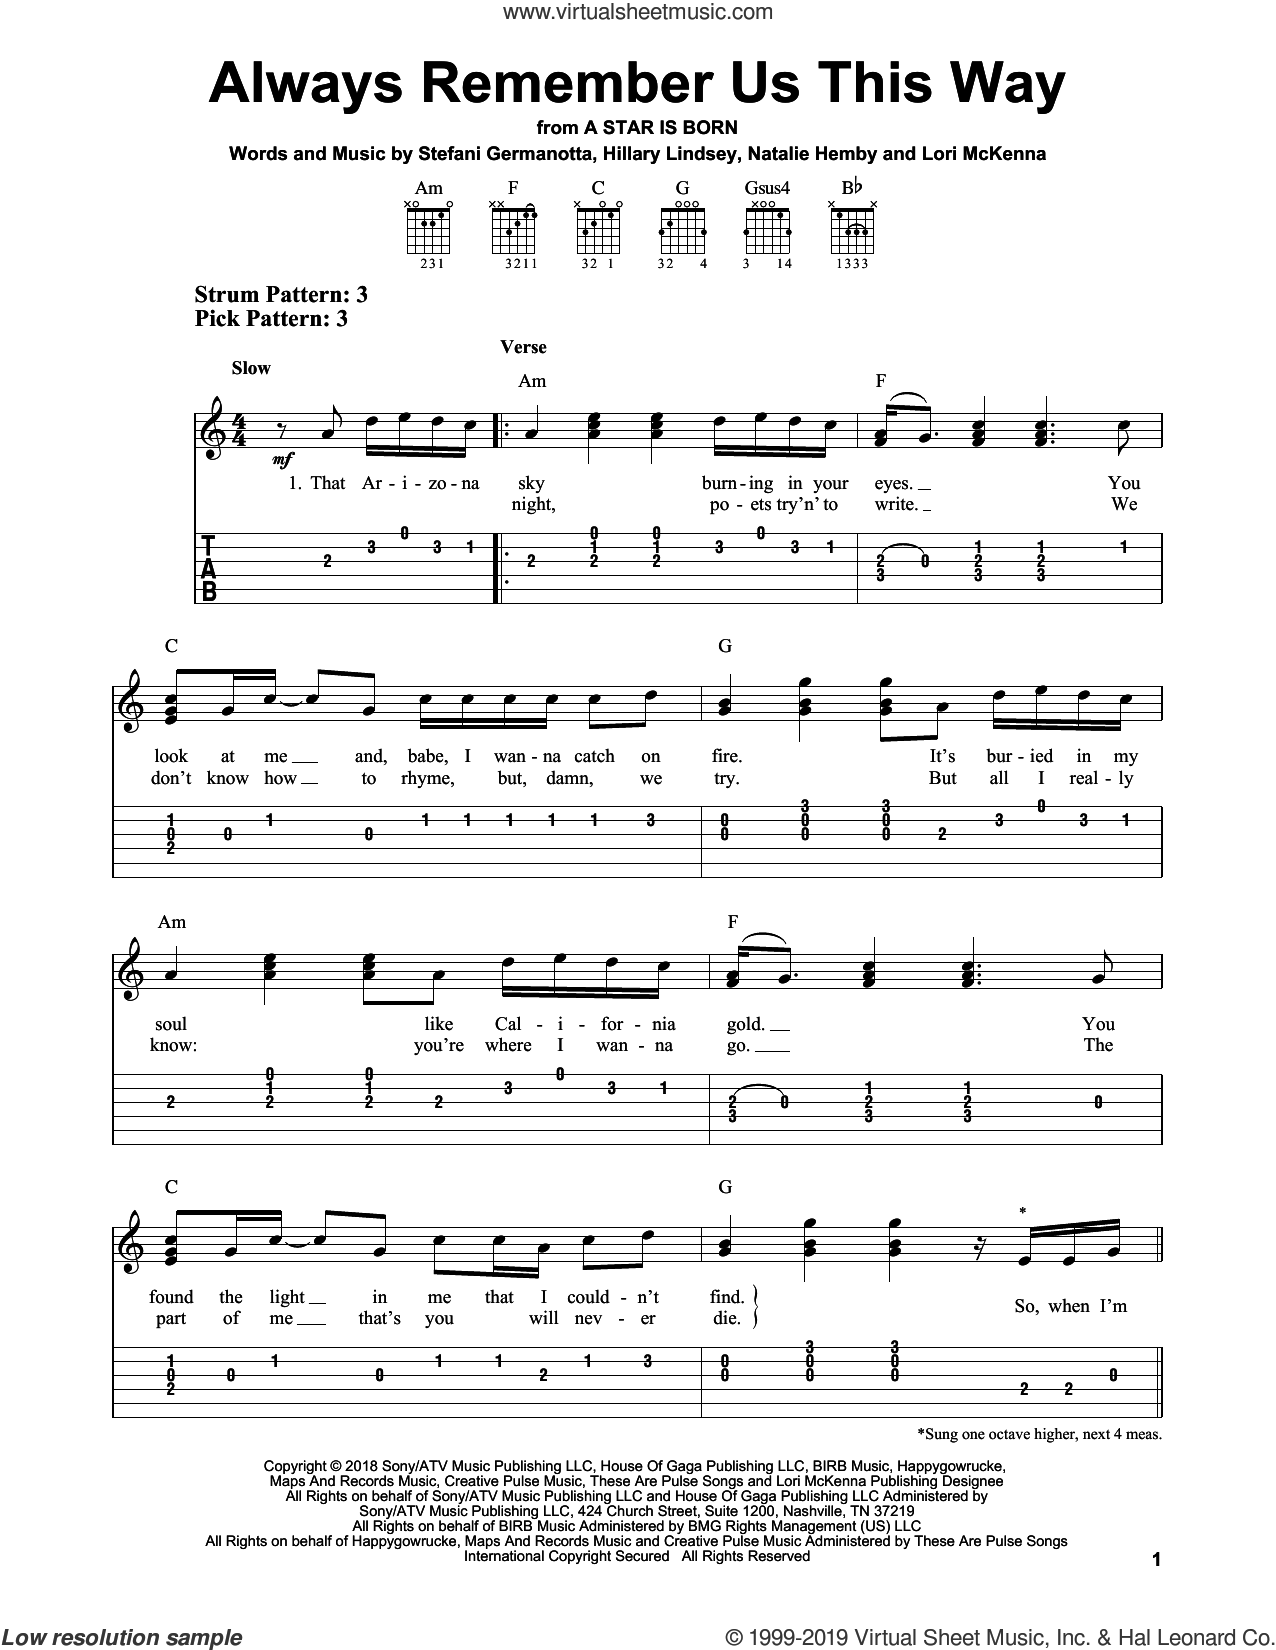 Always Remember Us This Way (from A Star Is Born) sheet music for guitar solo (easy tablature) by Lady Gaga, Hillary Lindsey, Lori McKenna and Natalie Hemby, easy guitar (easy tablature)